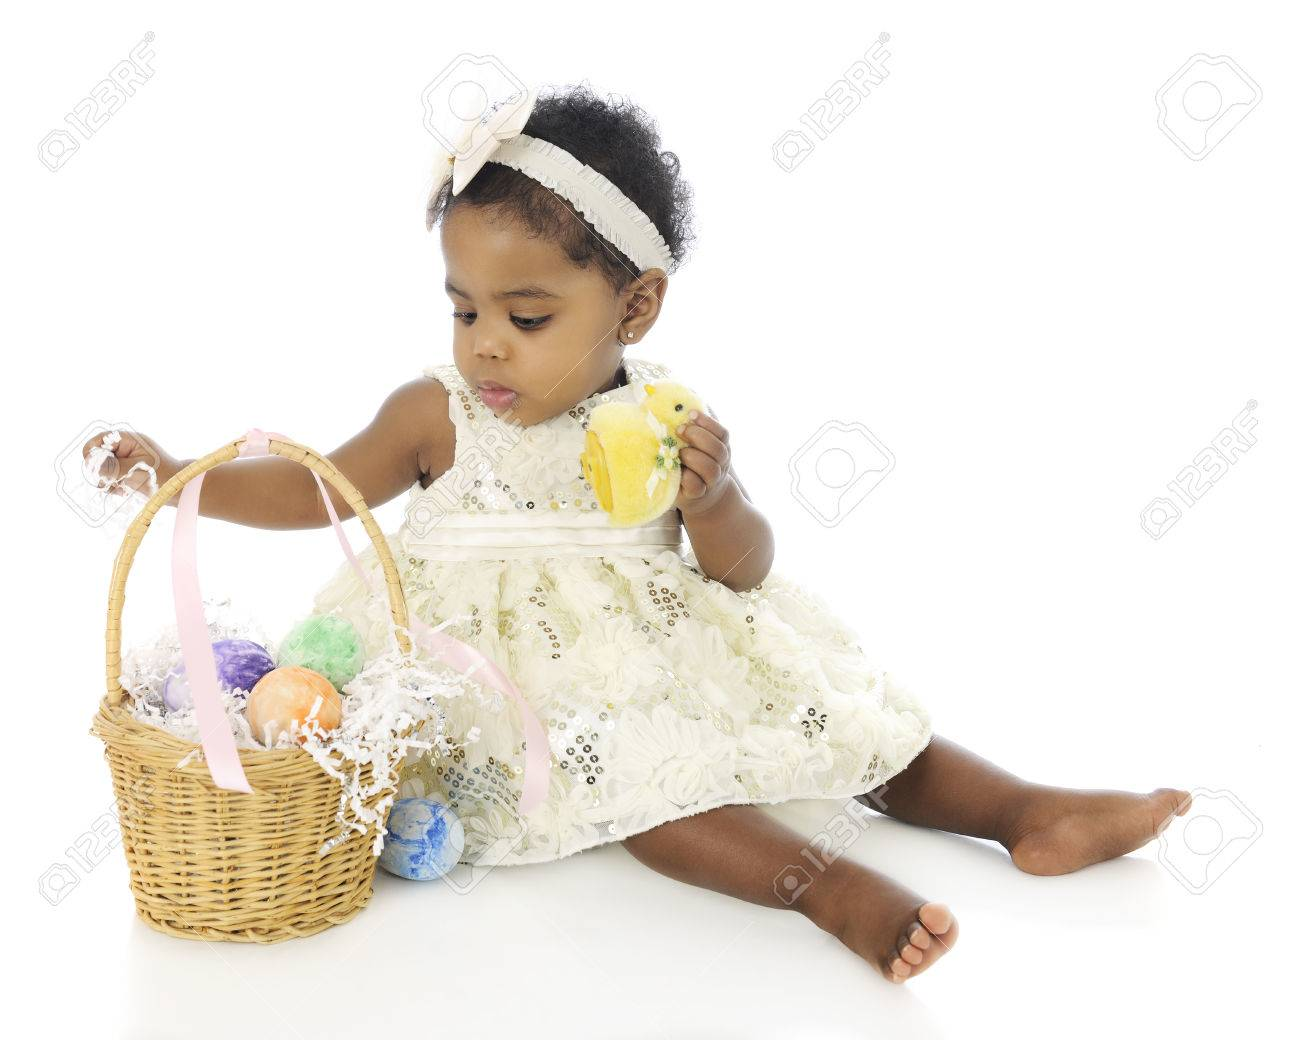 A beautiful baby girl, all dressed up, exploring her first Easter basket.  On a white background. Stock Photo - 27304295